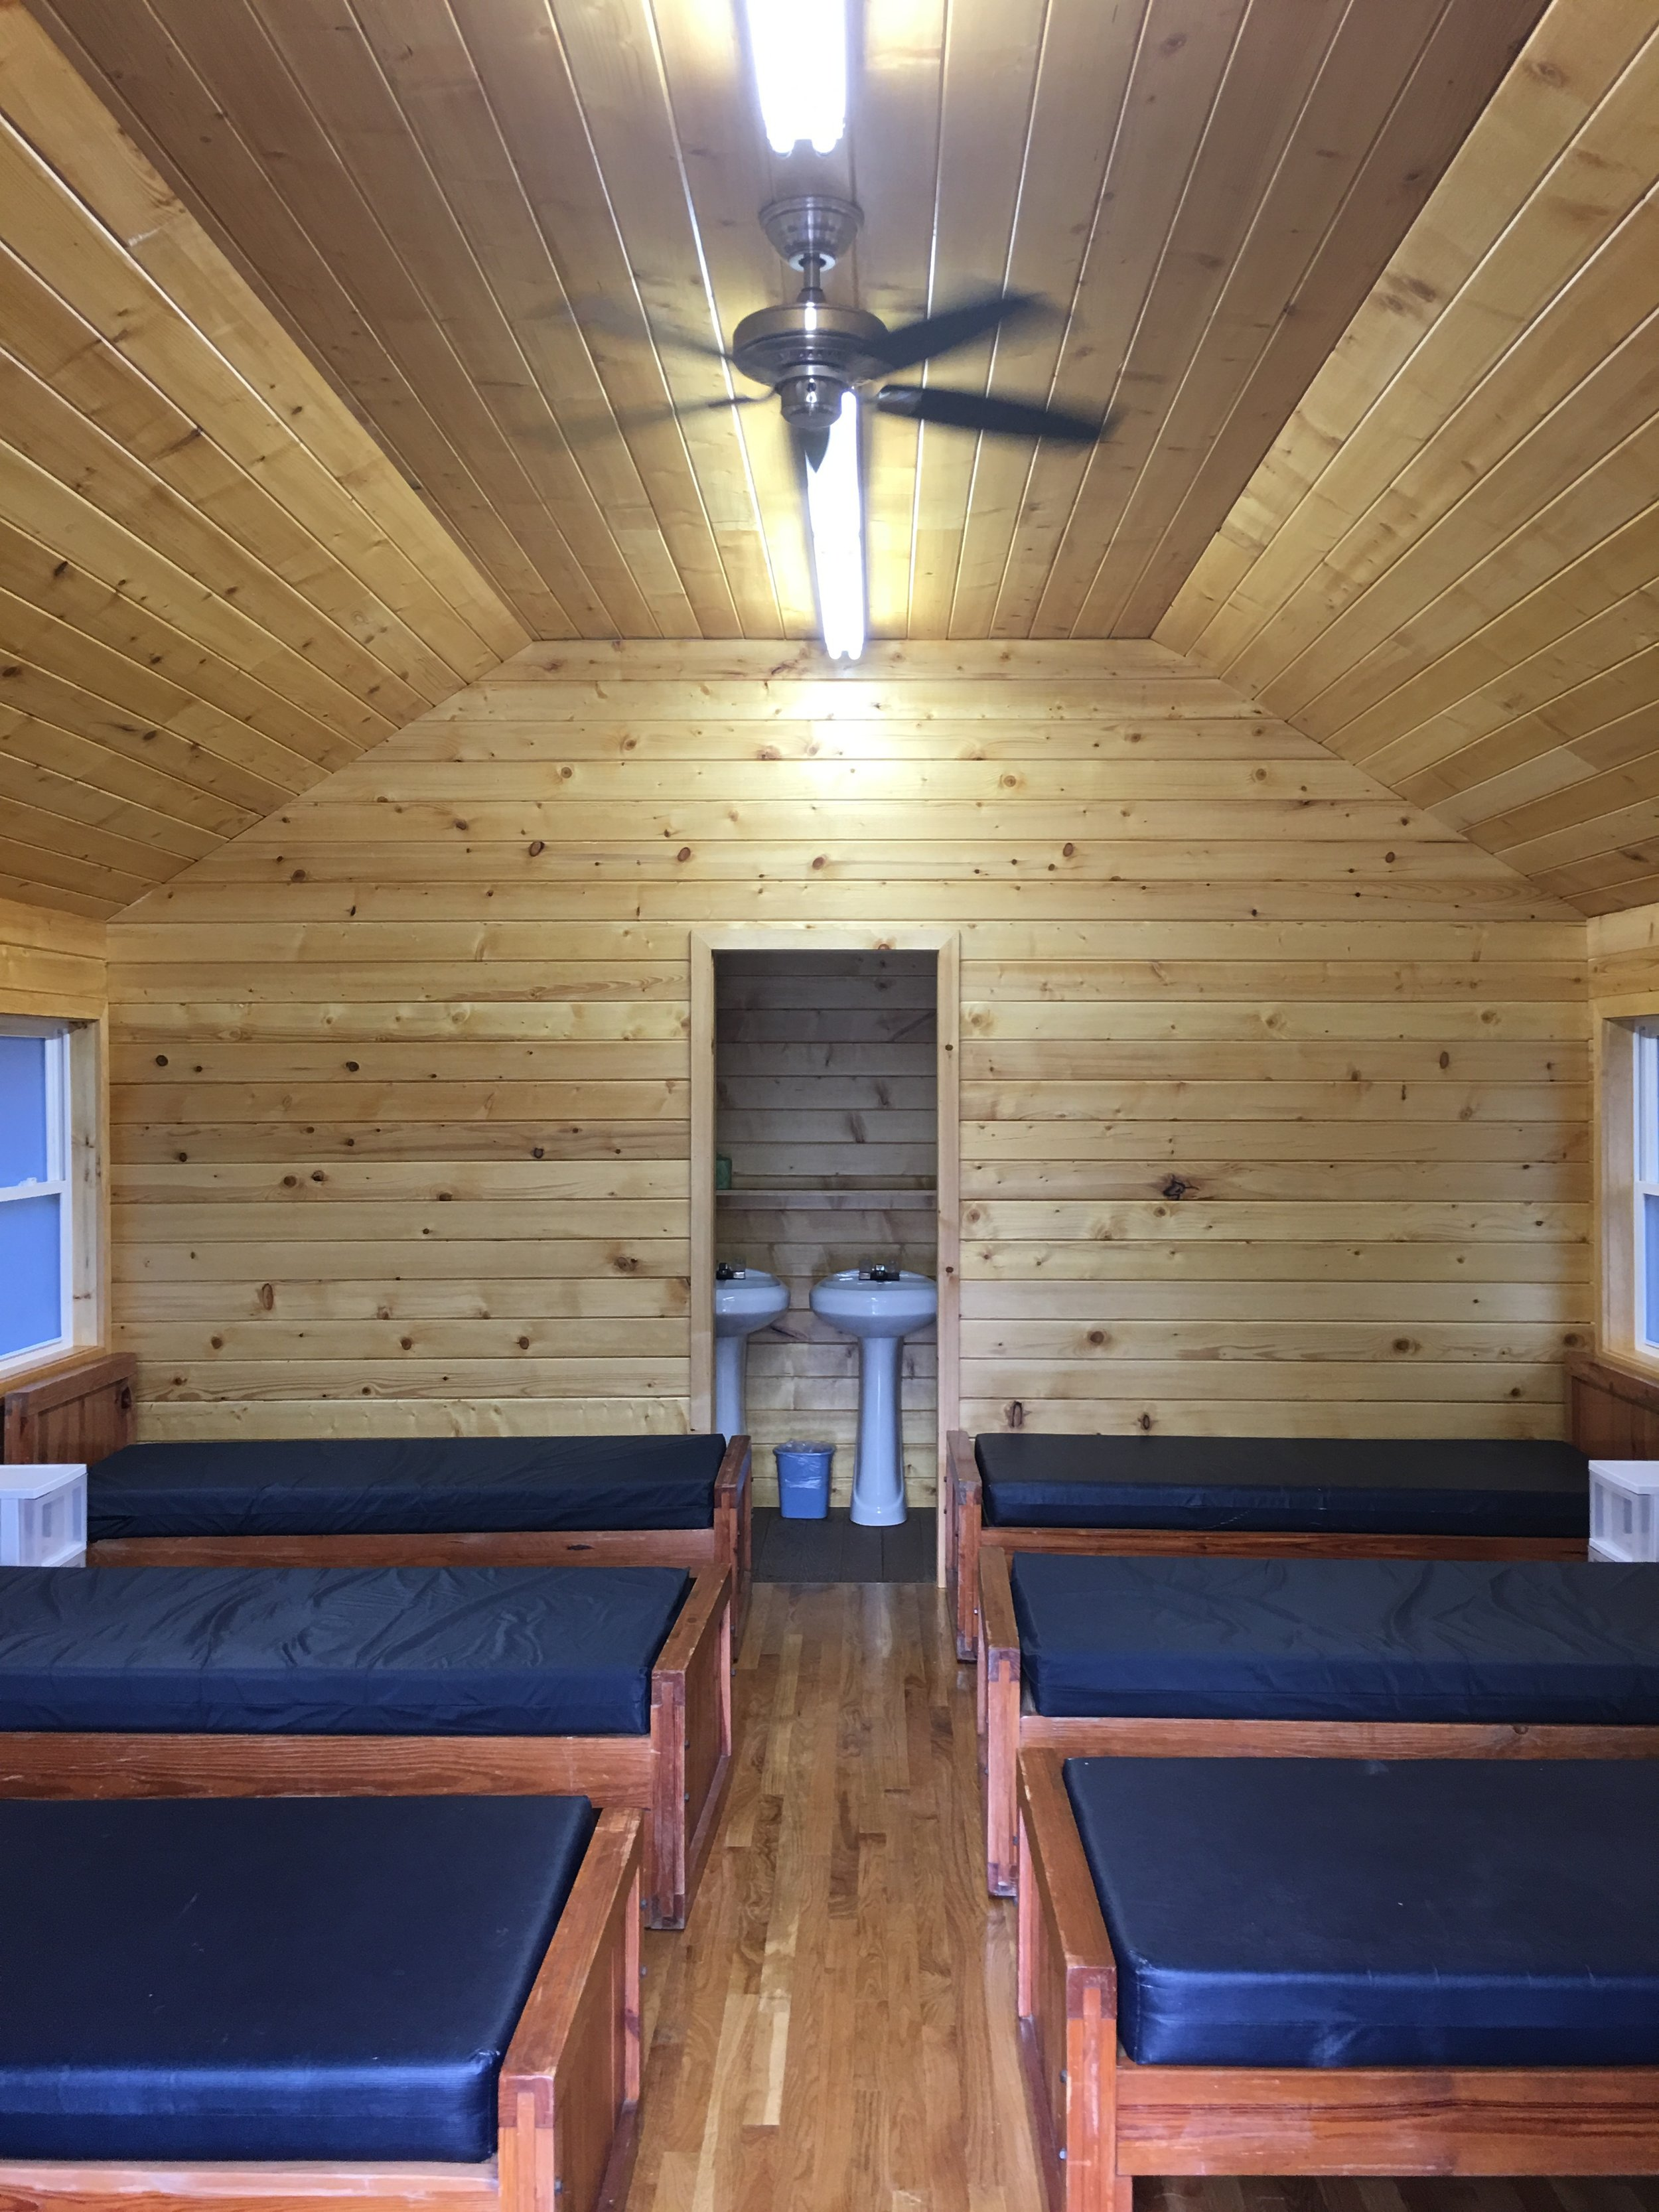 A typical cabin sleeps several people. Bath/shower in rear of cabin.